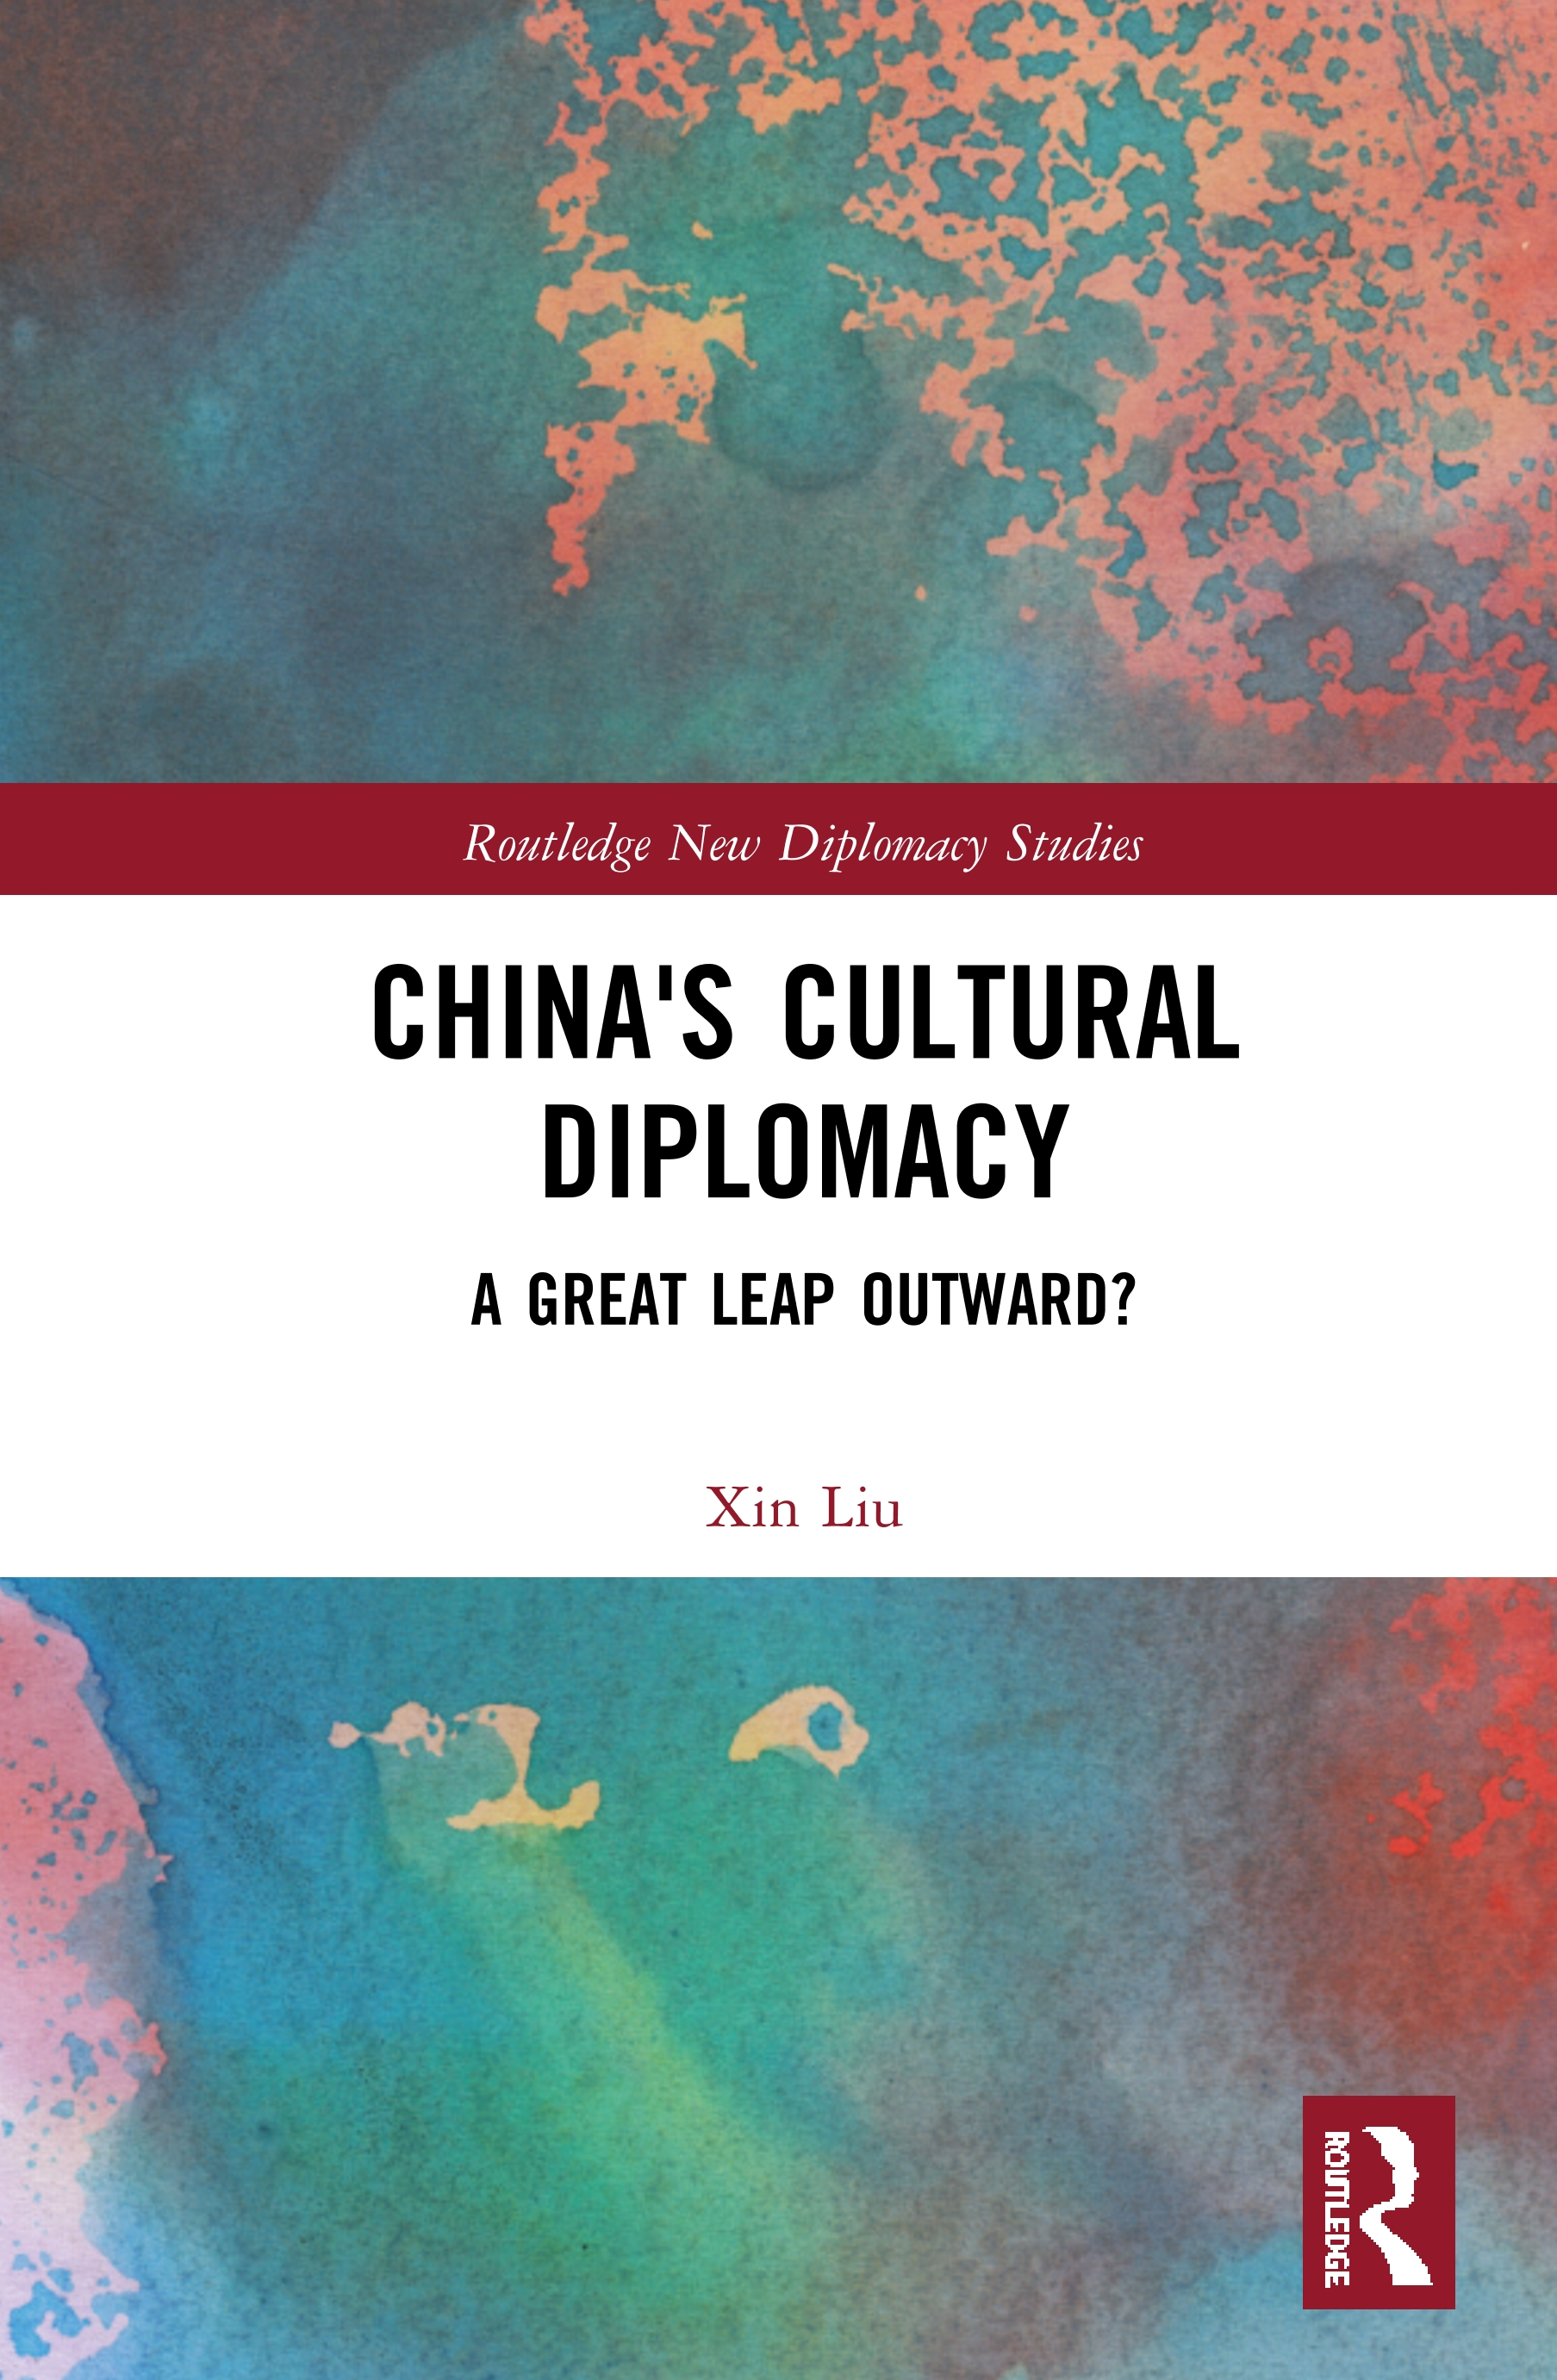 China's Cultural Diplomacy: A Great Leap Outward? book cover